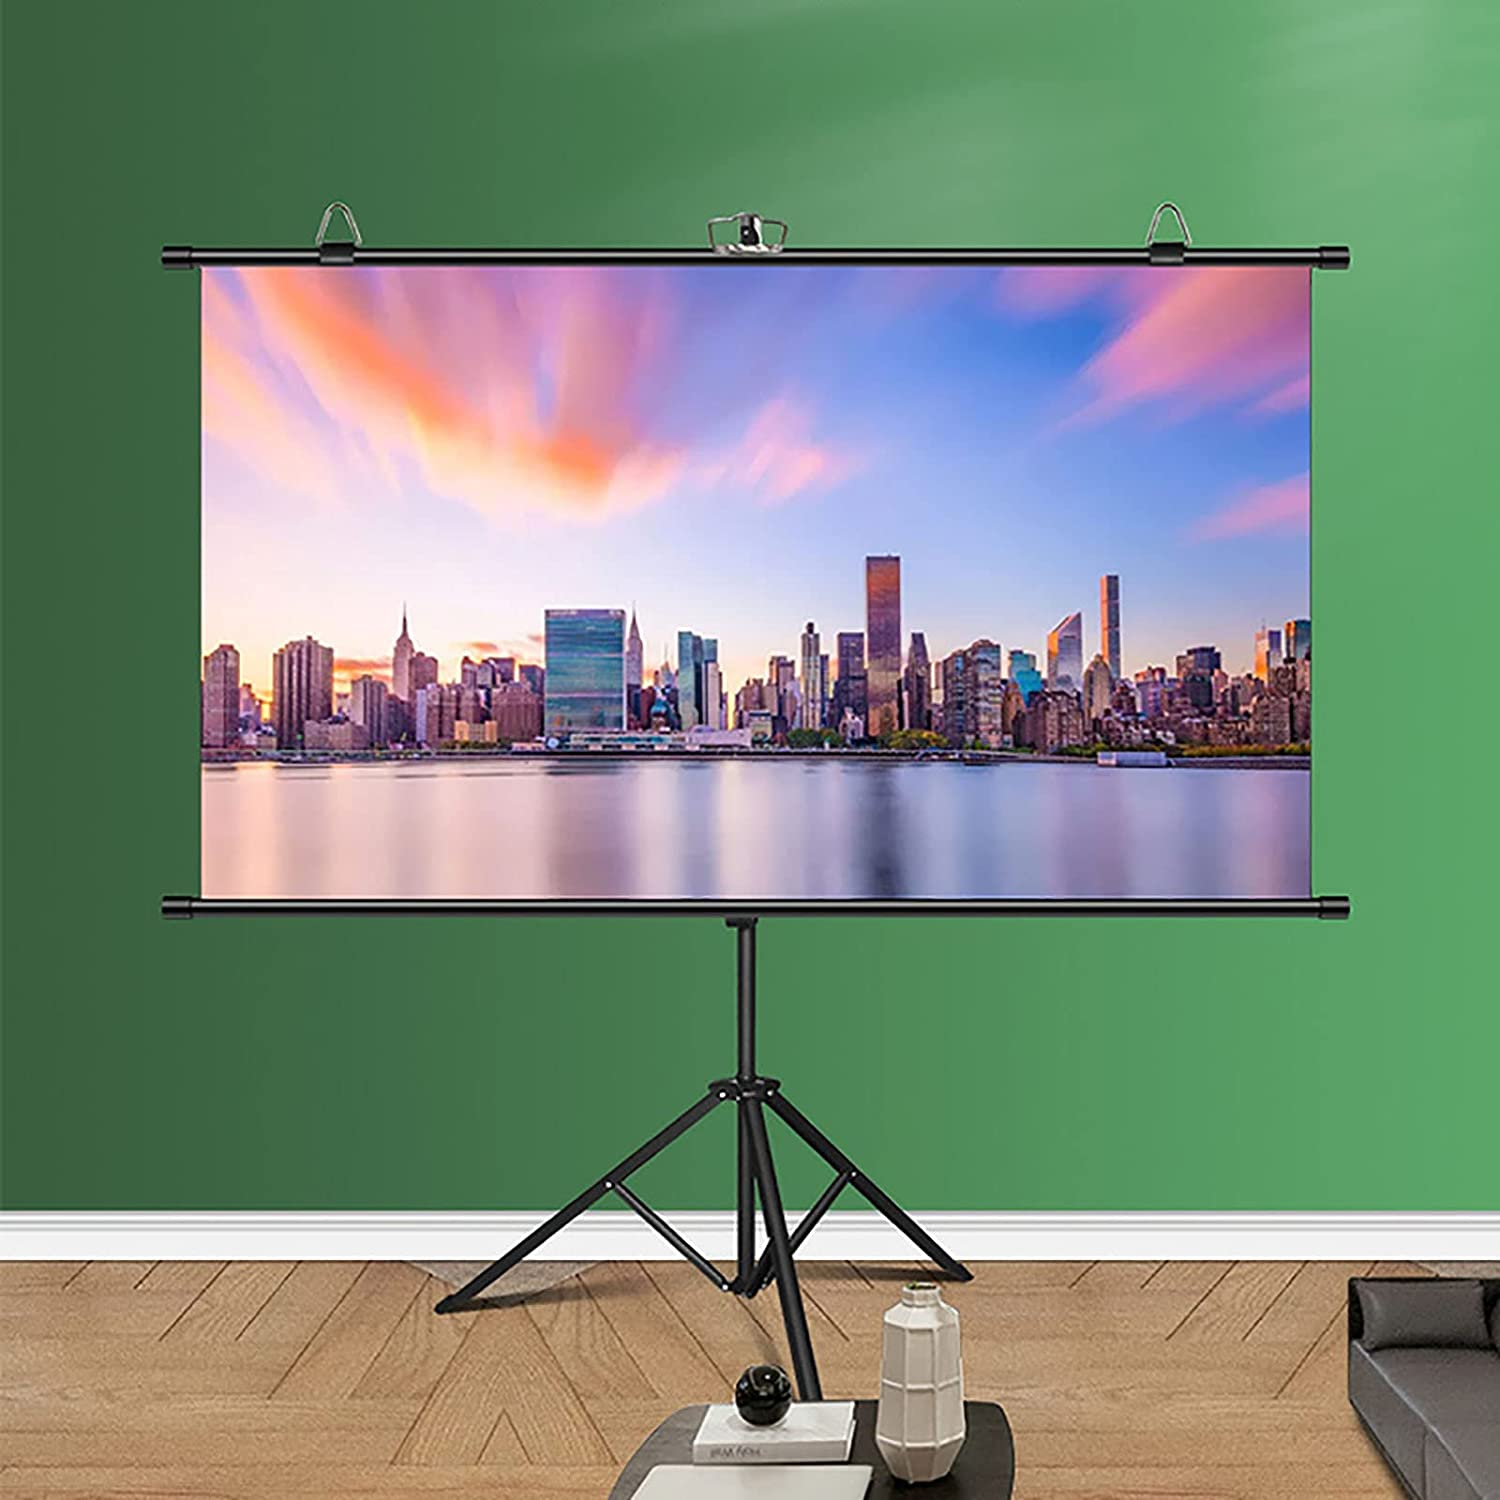 YFF-Corrimano Portable Projector Screen with Tripod - 4:3/16:9 HD Wrinkle-Free Tripod Screen Mobile Projection Screen, for Schools Meeting Conference Indoor Outdoor Use